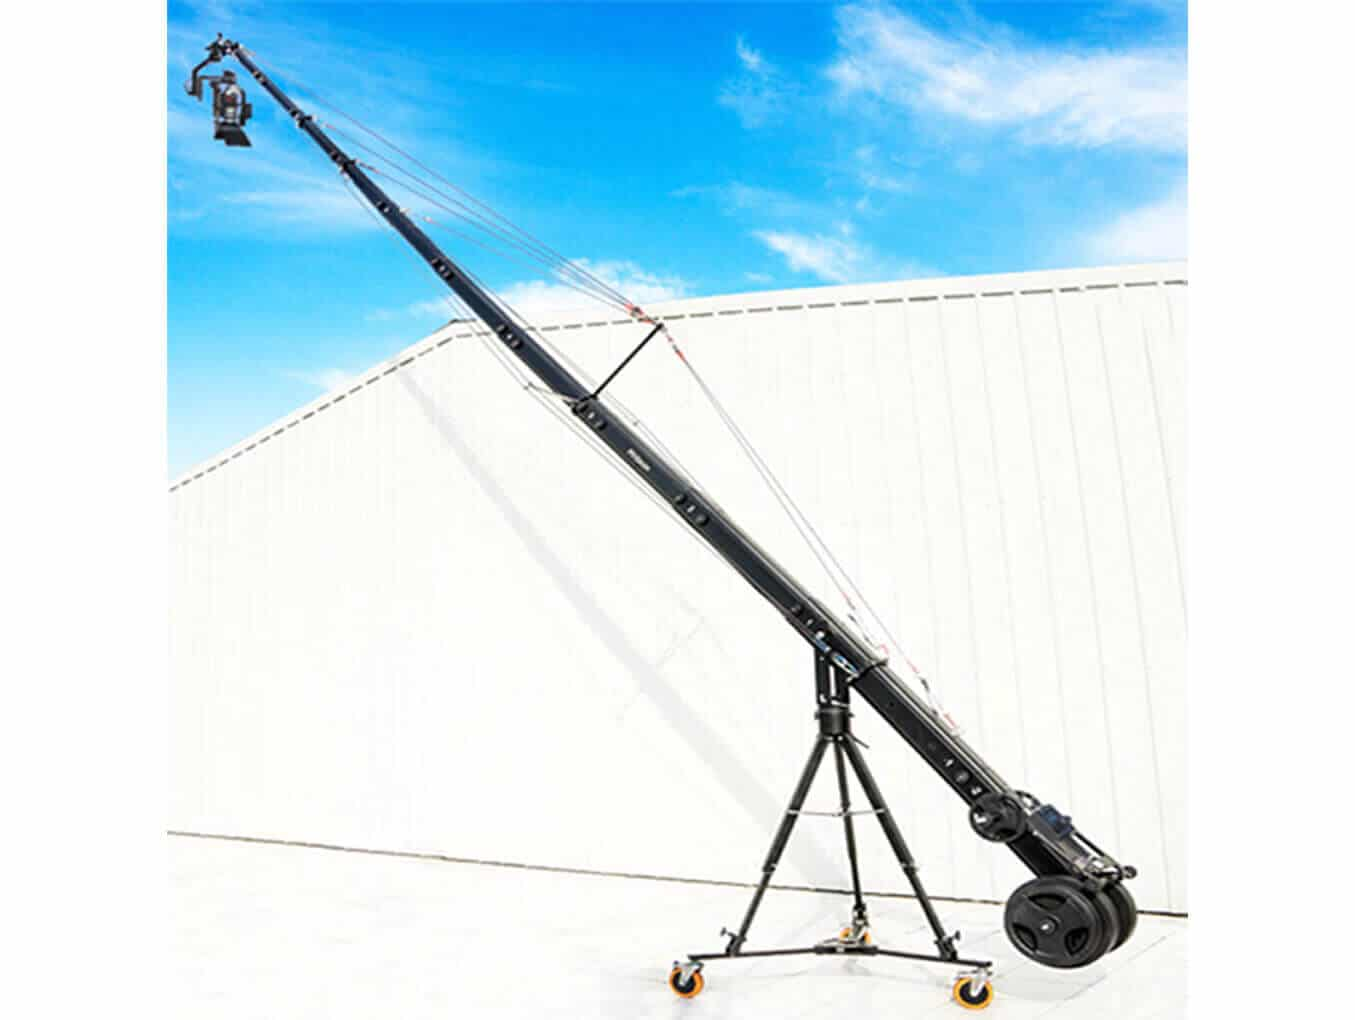 Grue caméra -  Proaim Kite-33 ft Titan Package